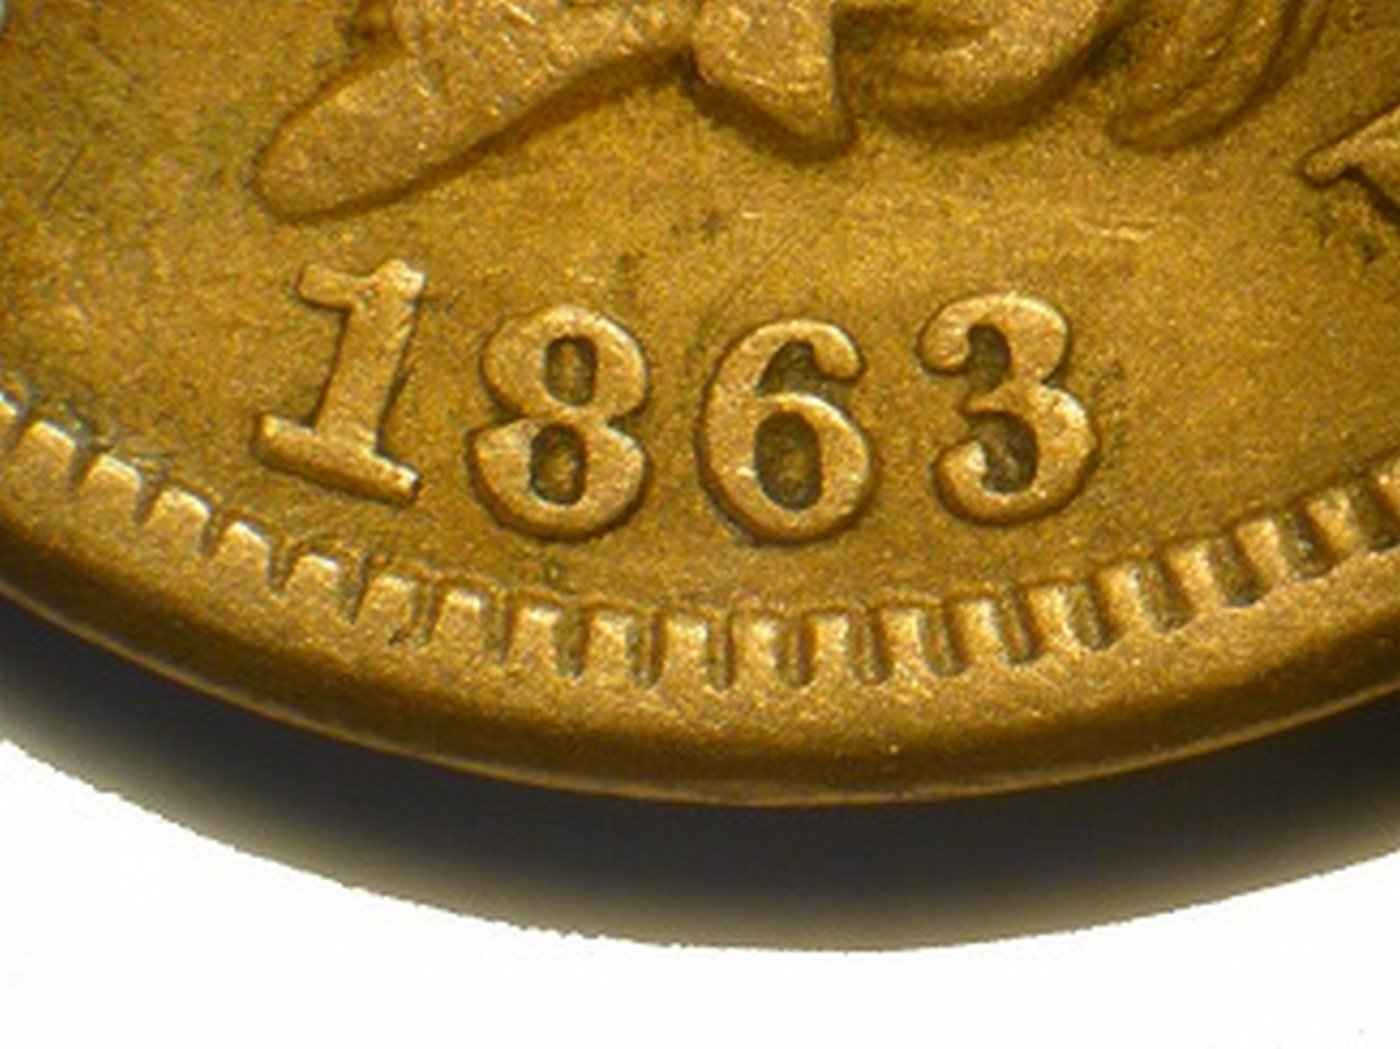 1863 Obverse of CRK-003 - Indian Head Penny - Photo by David Poliquin